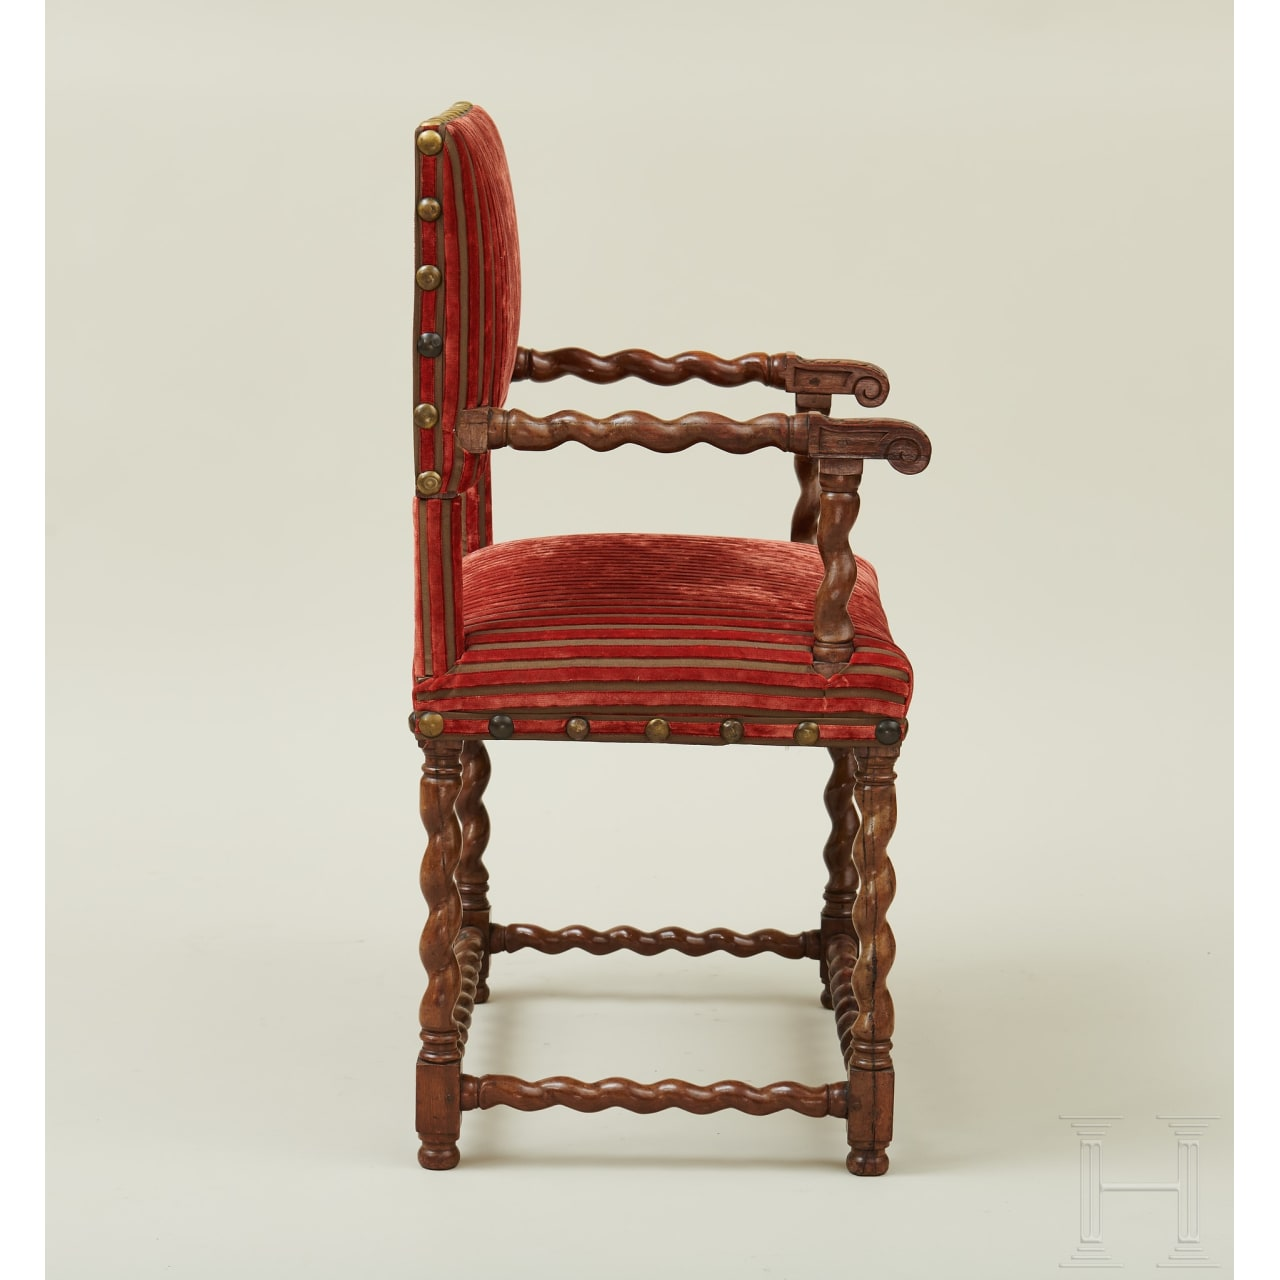 A set of four Renaissance armchairs, Île-de-France, mid 17th century